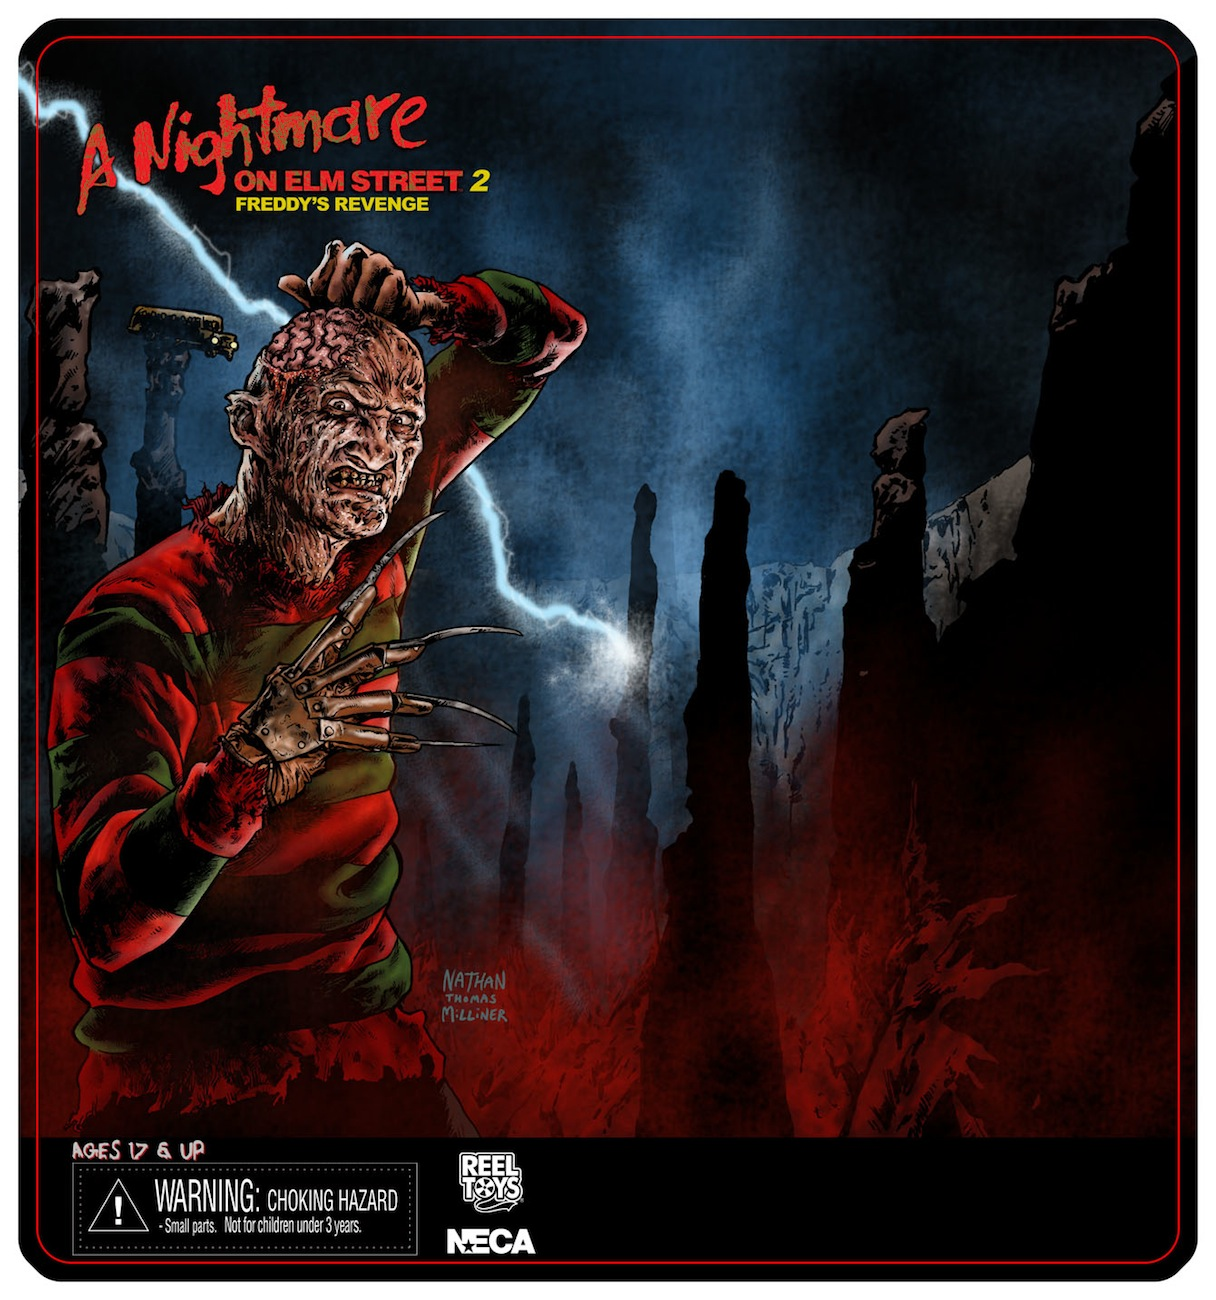 http://news.toyark.com/wp-content/uploads/sites/4/2015/01/ANOES-2-Retro-Freddy-Krueger-by-NECA-012.jpg